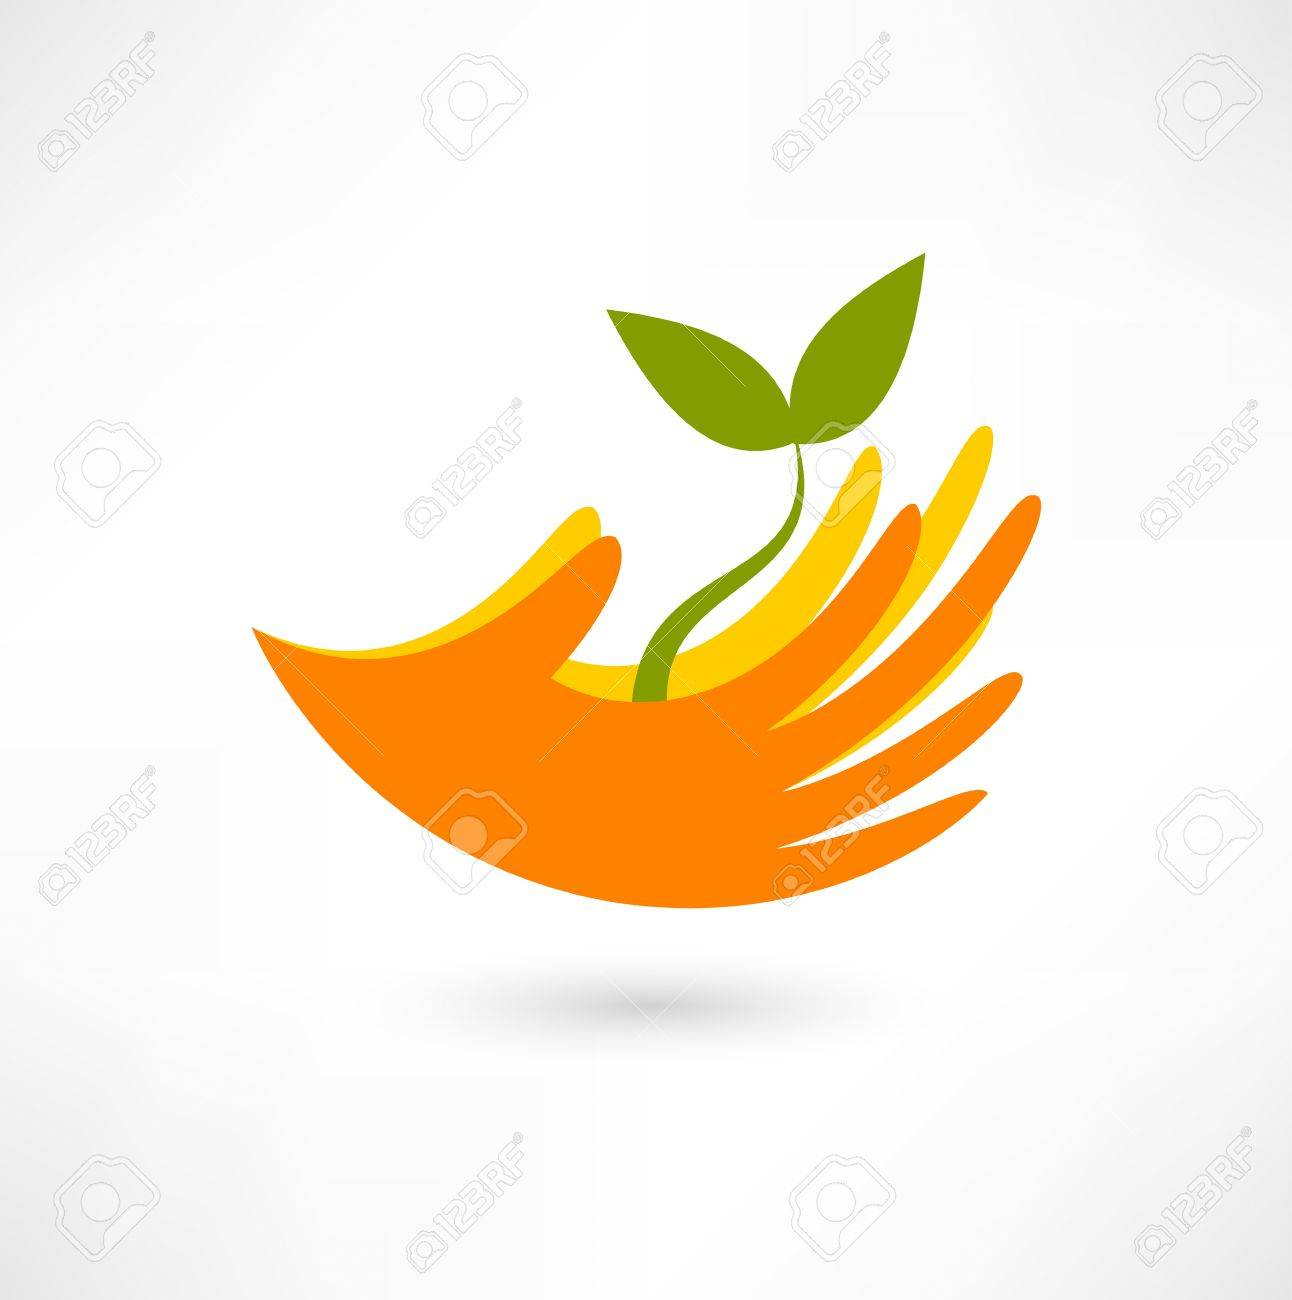 Hands and plant icon Stock Vector - 18035602